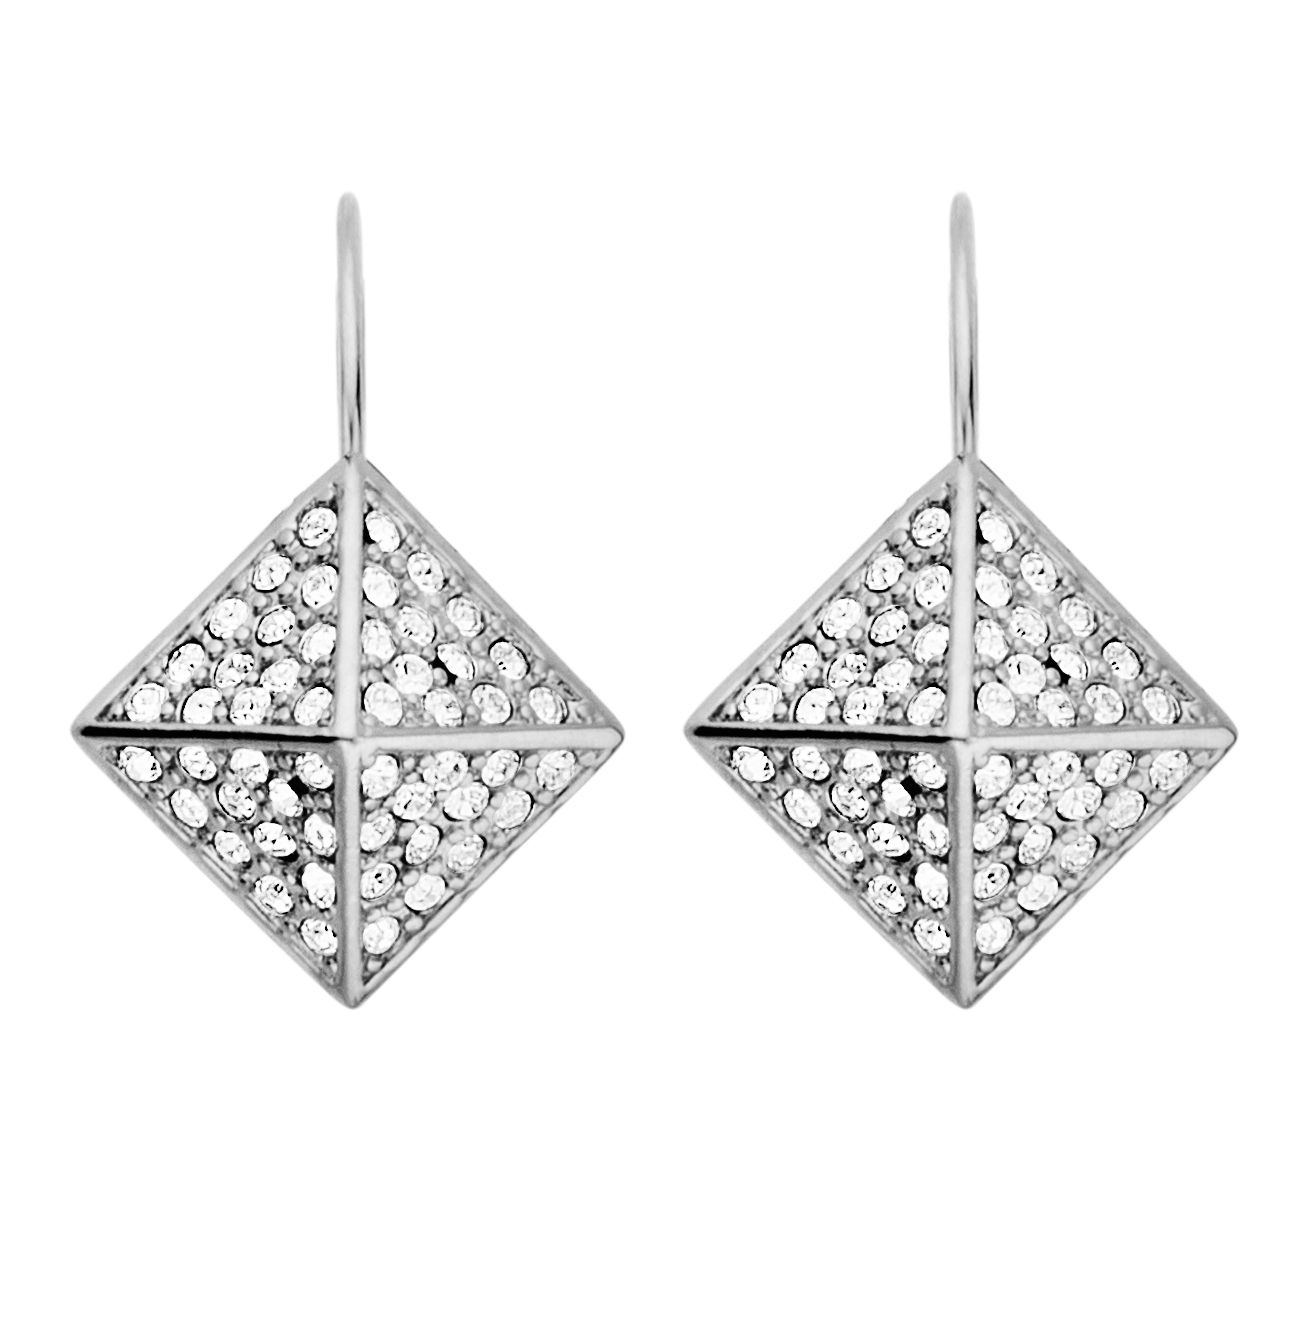 Kalfani shiny silver earrings